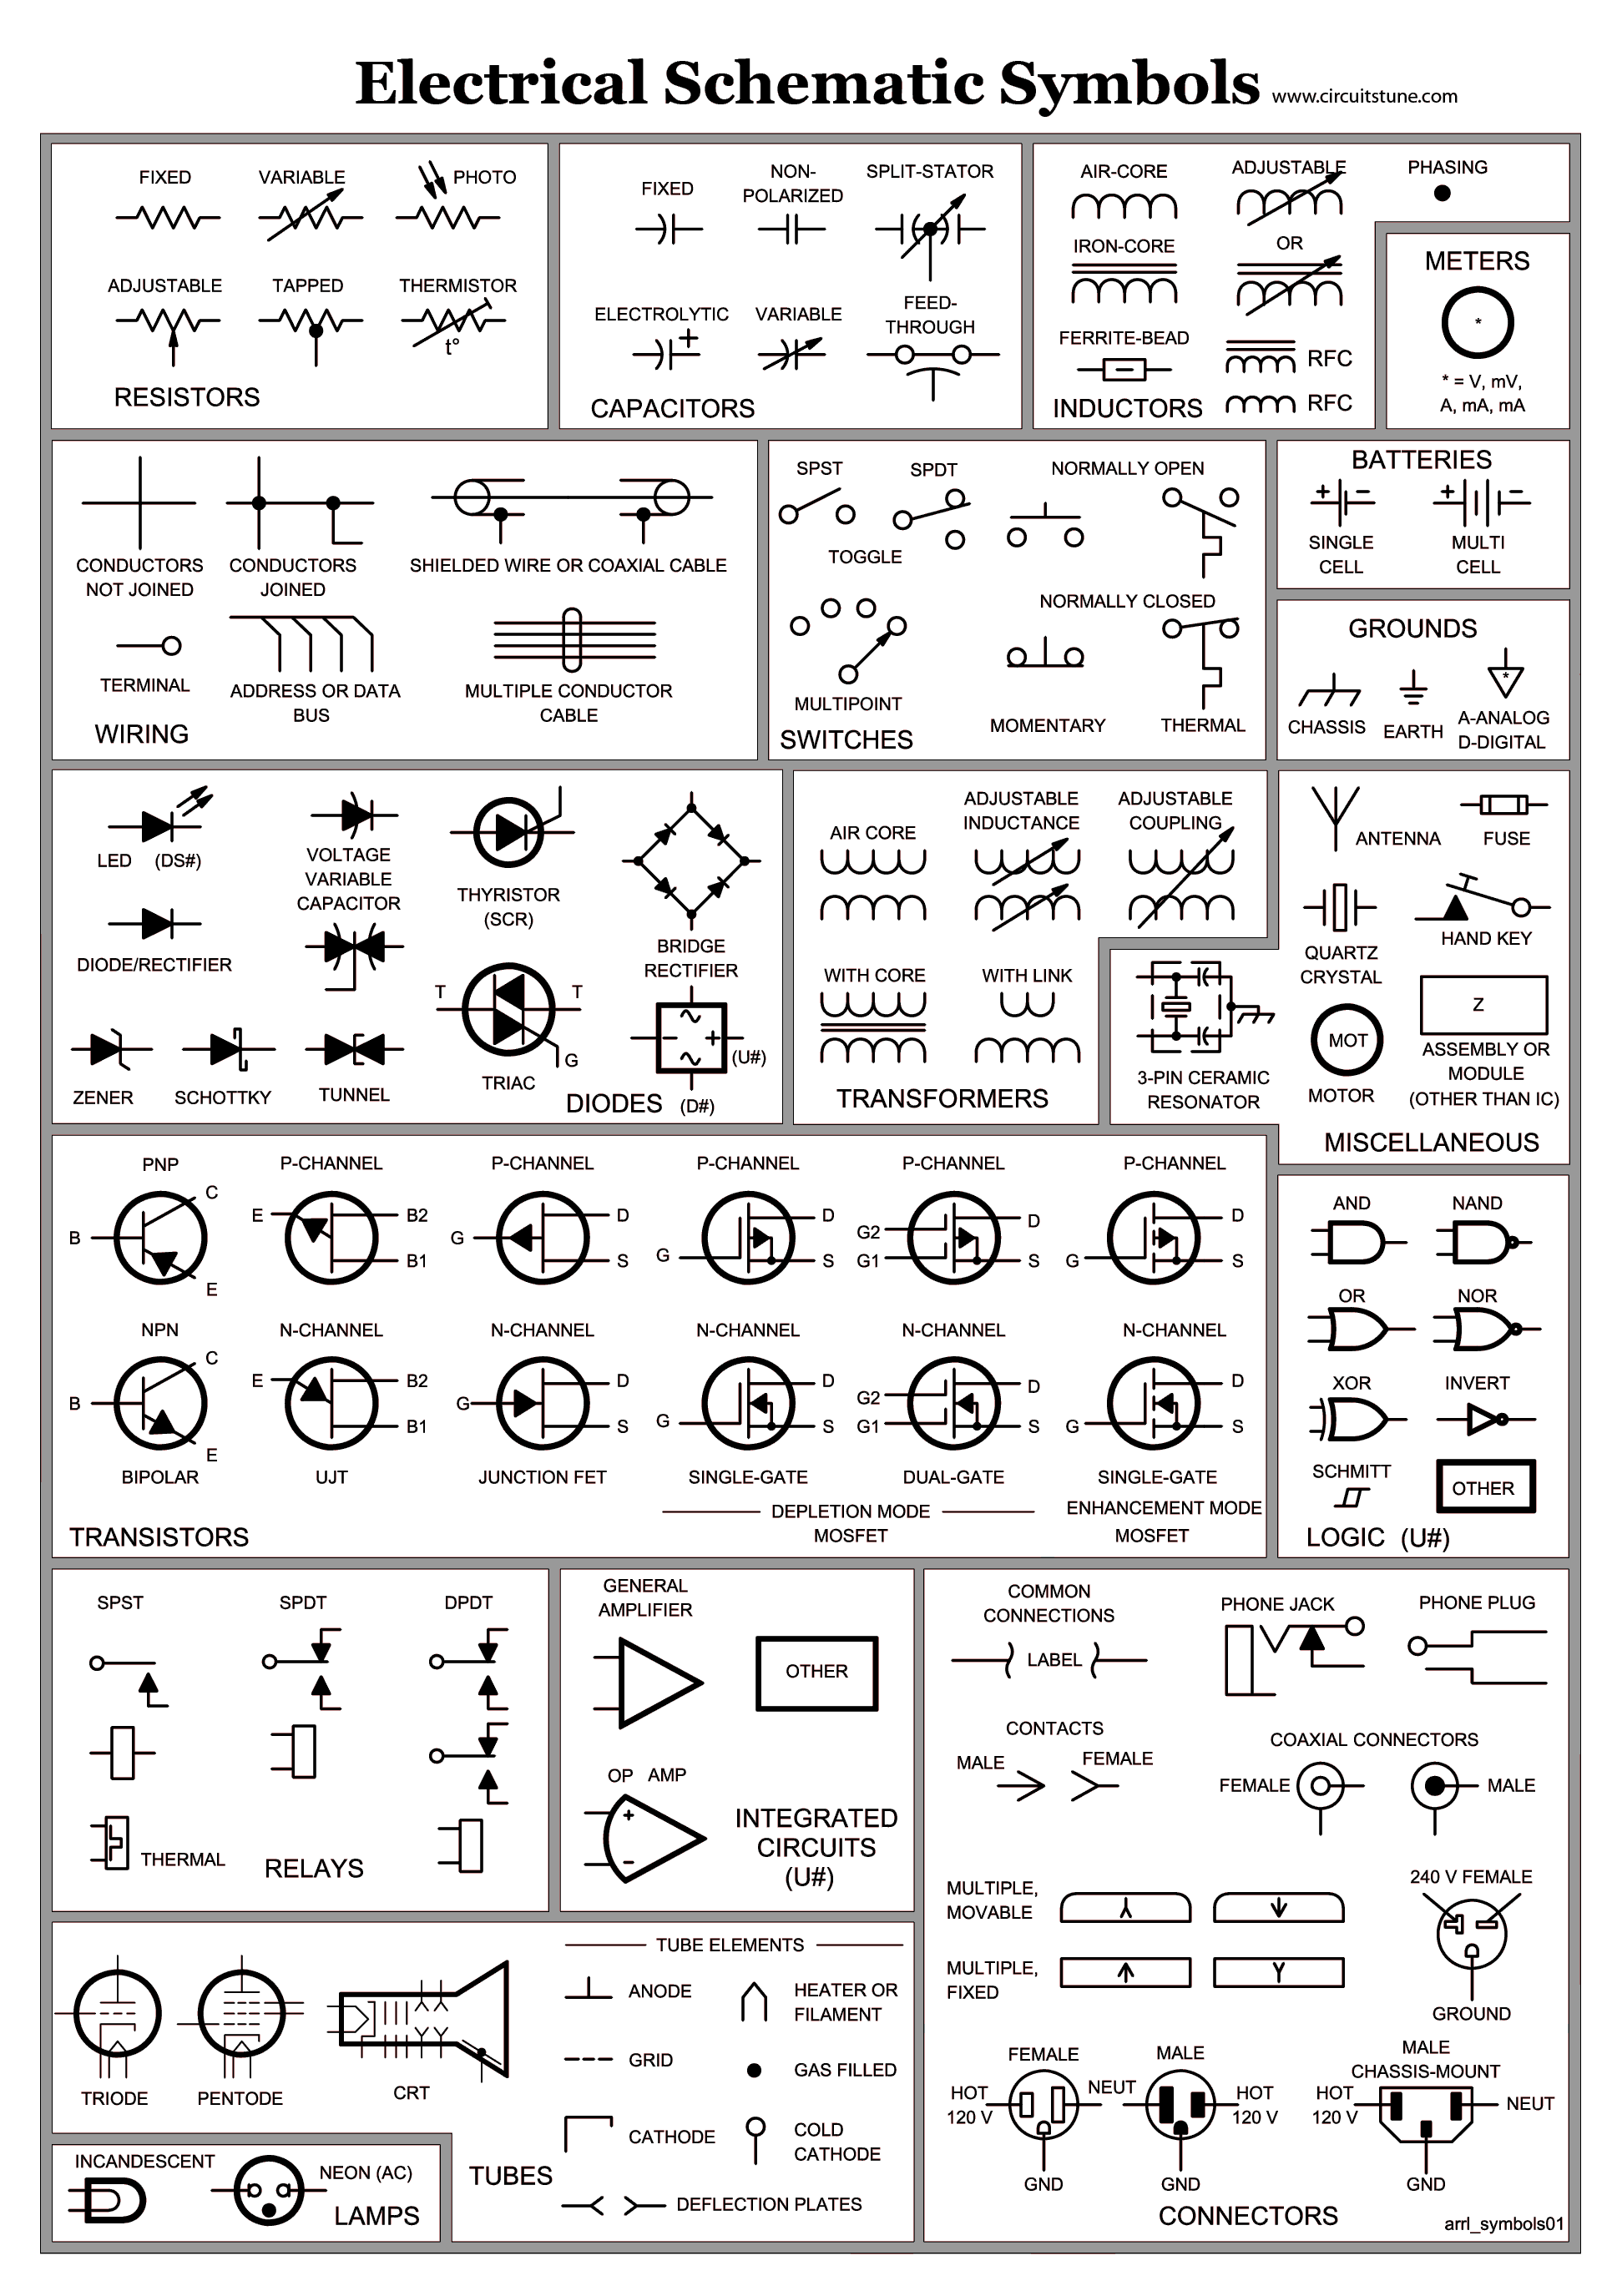 2005 chrysler pacifica 3 8 engine diagram [ 1937 x 2751 Pixel ]